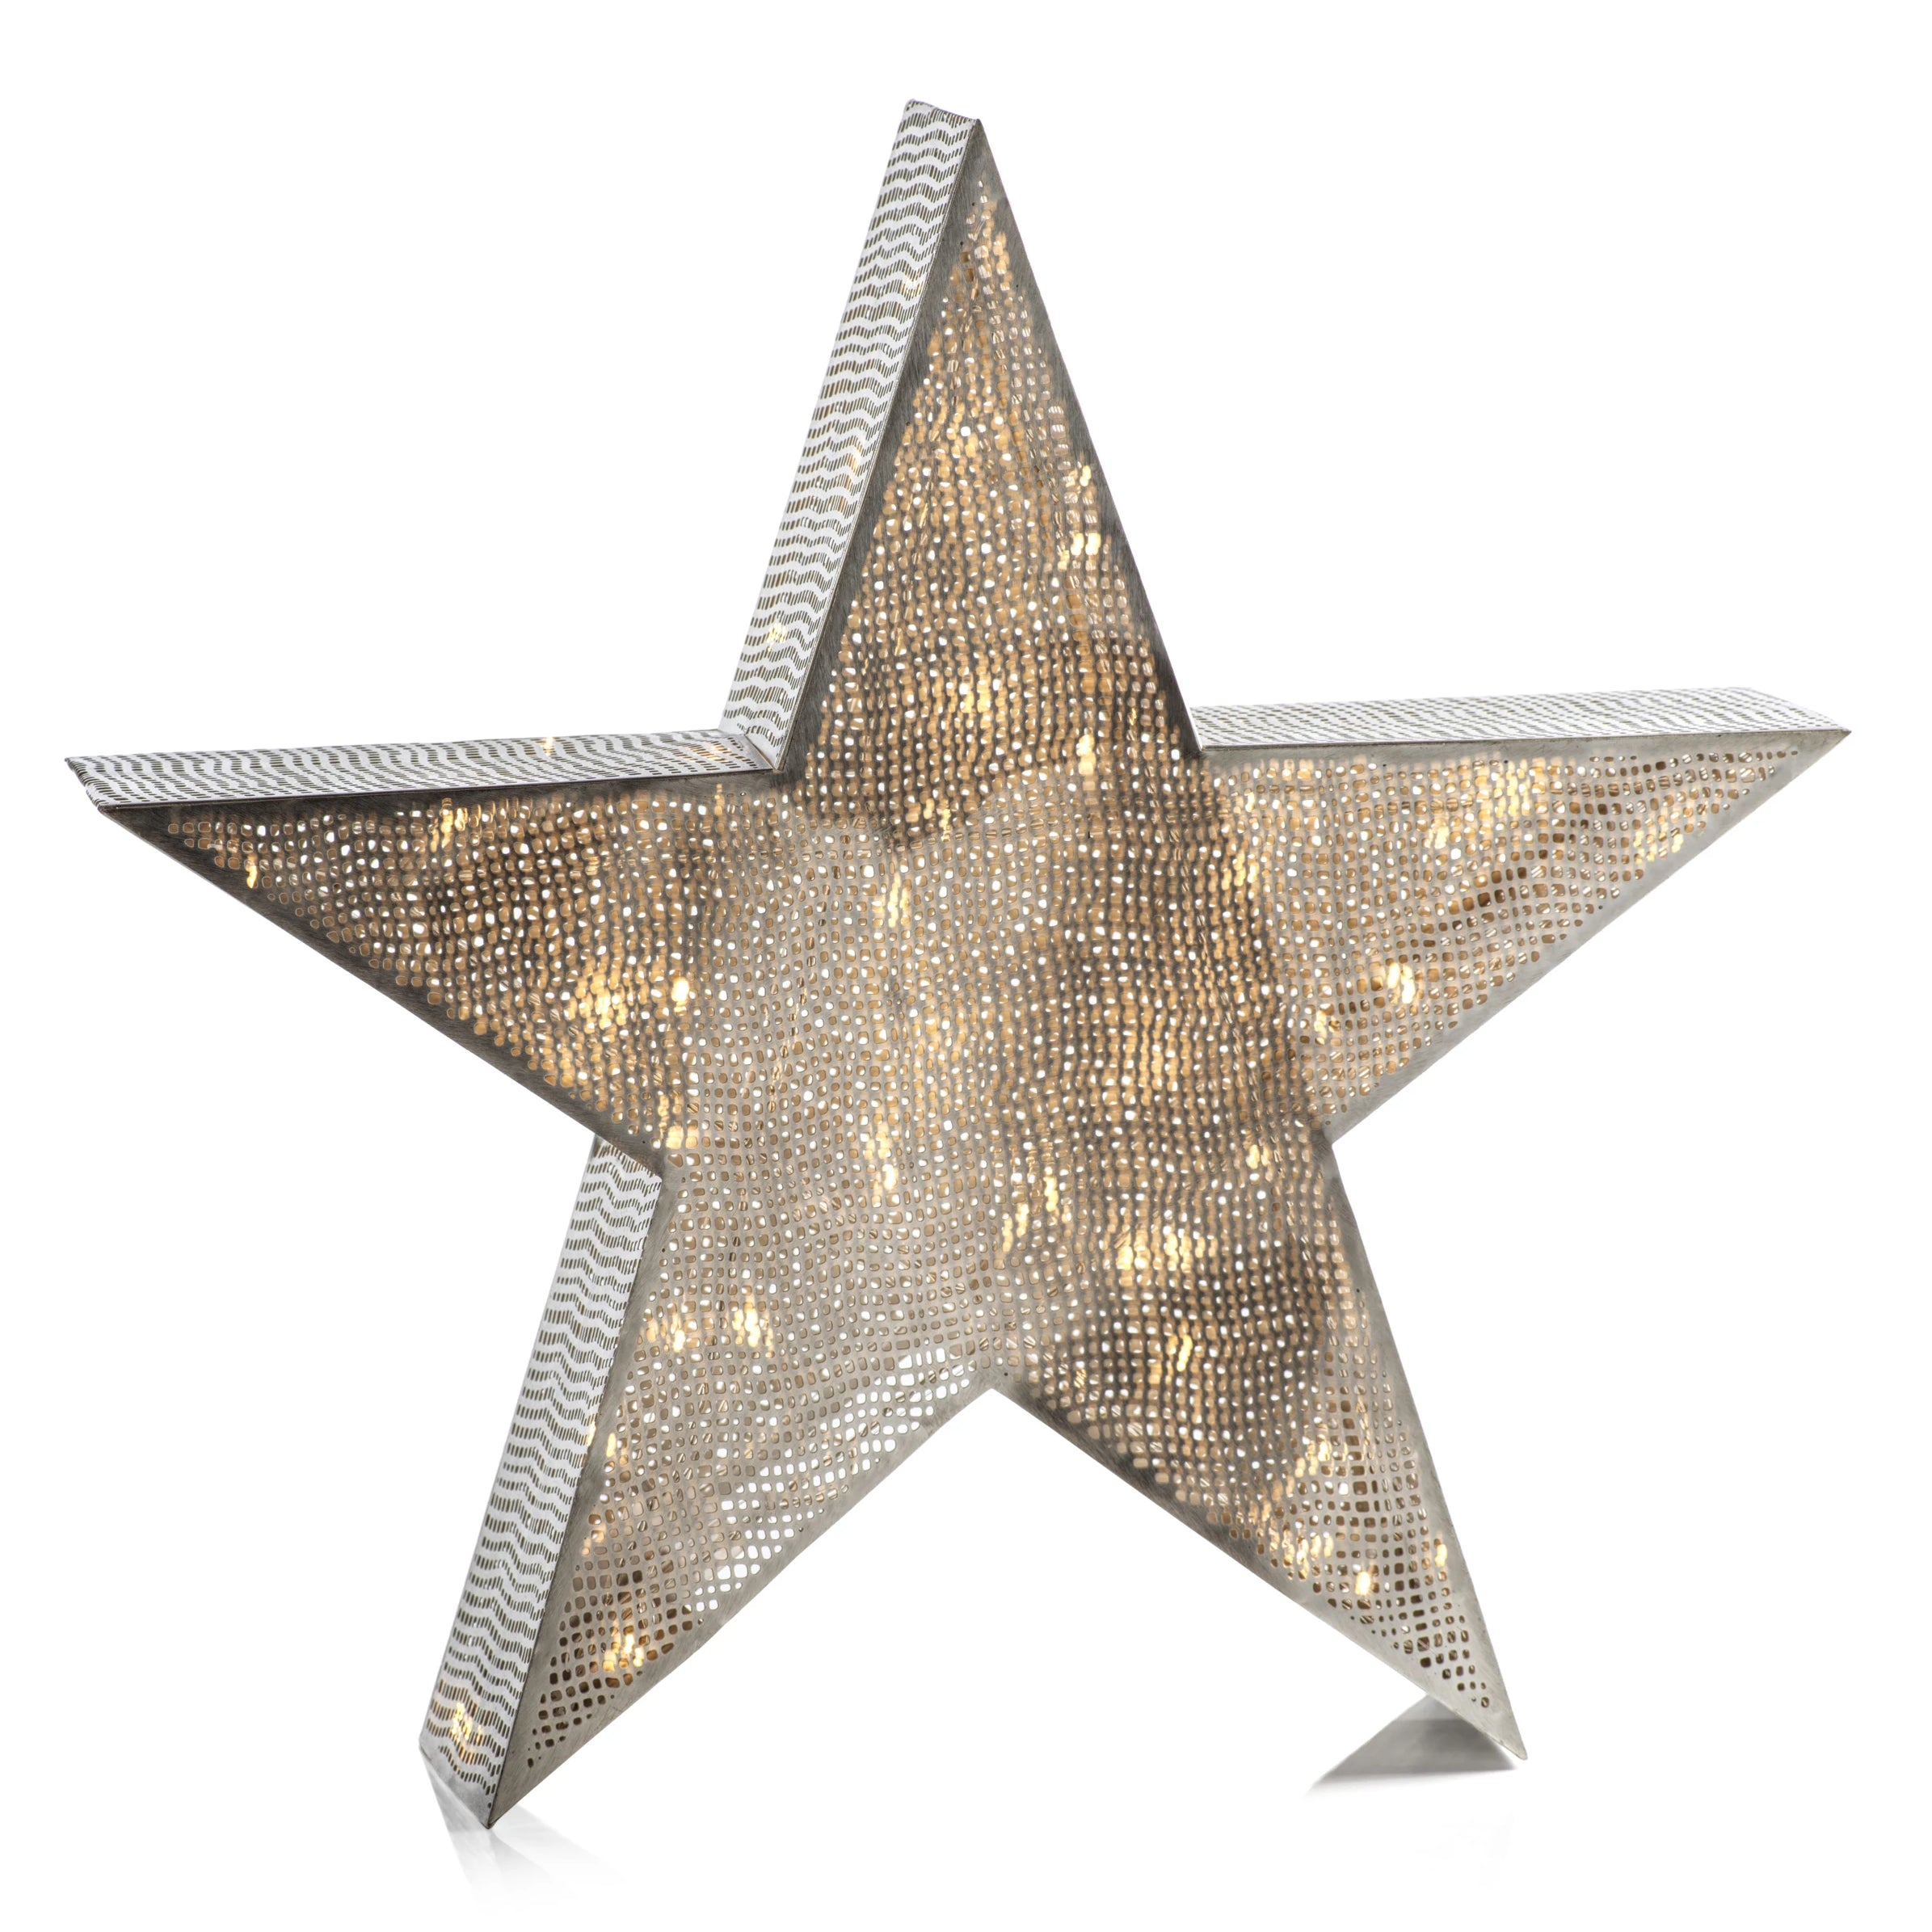 LED Tabletop Metal Star Lamp - CARLYLE AVENUE